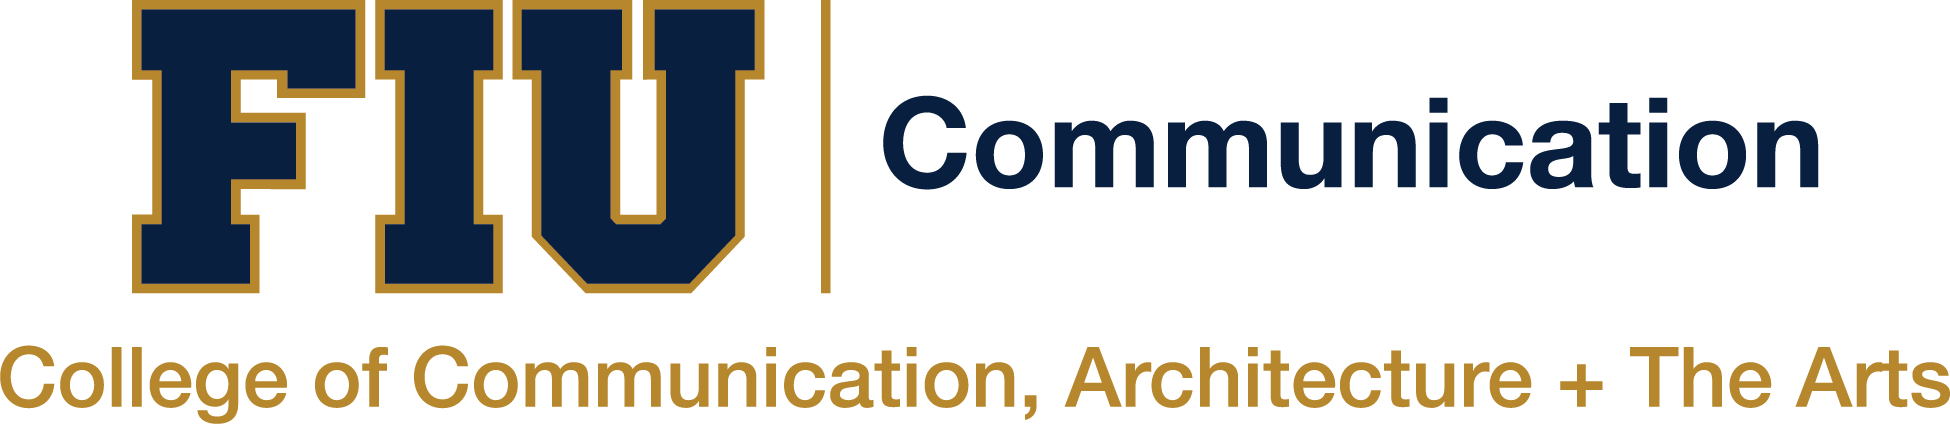 Department of Communication Logo